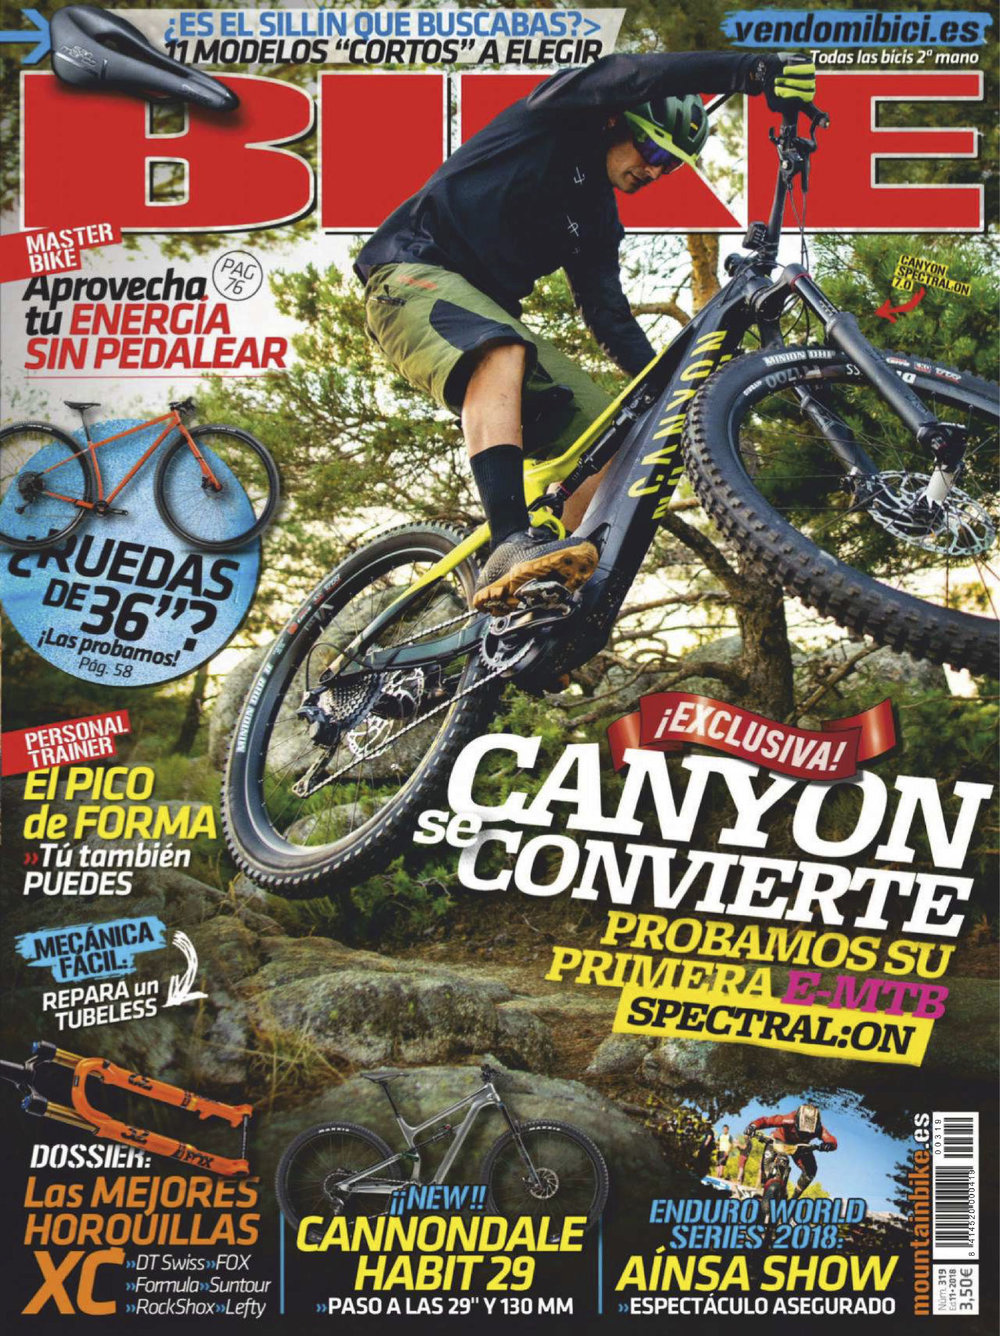 pol_tarres_projects_alps_2018_revista_bike_1-01.jpg